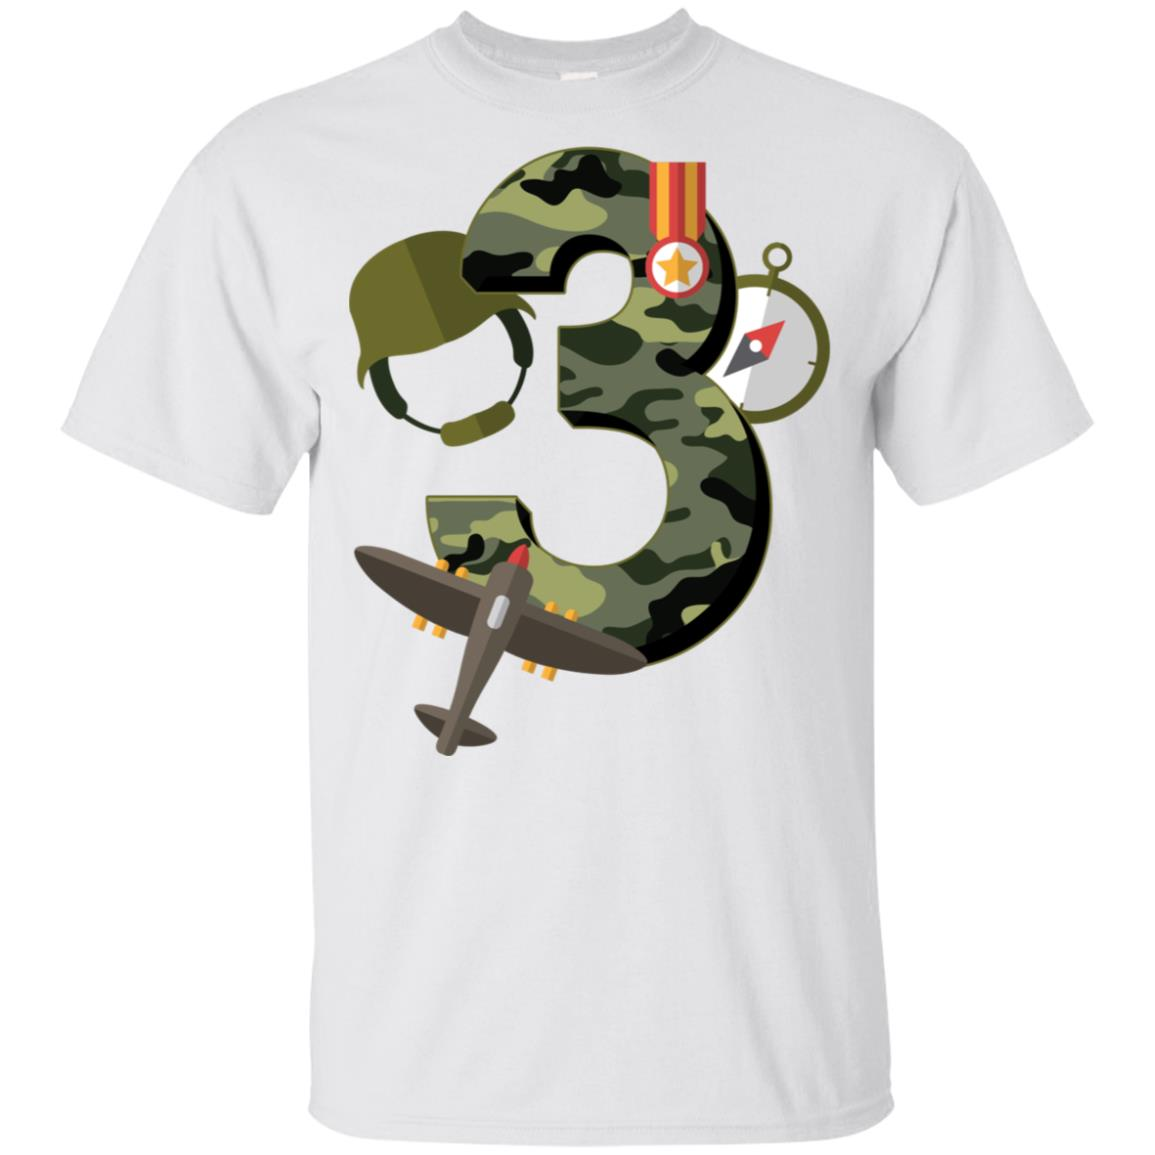 3rd Birthday Camouflage Army Soldier 3 Y Youth Short Sleeve